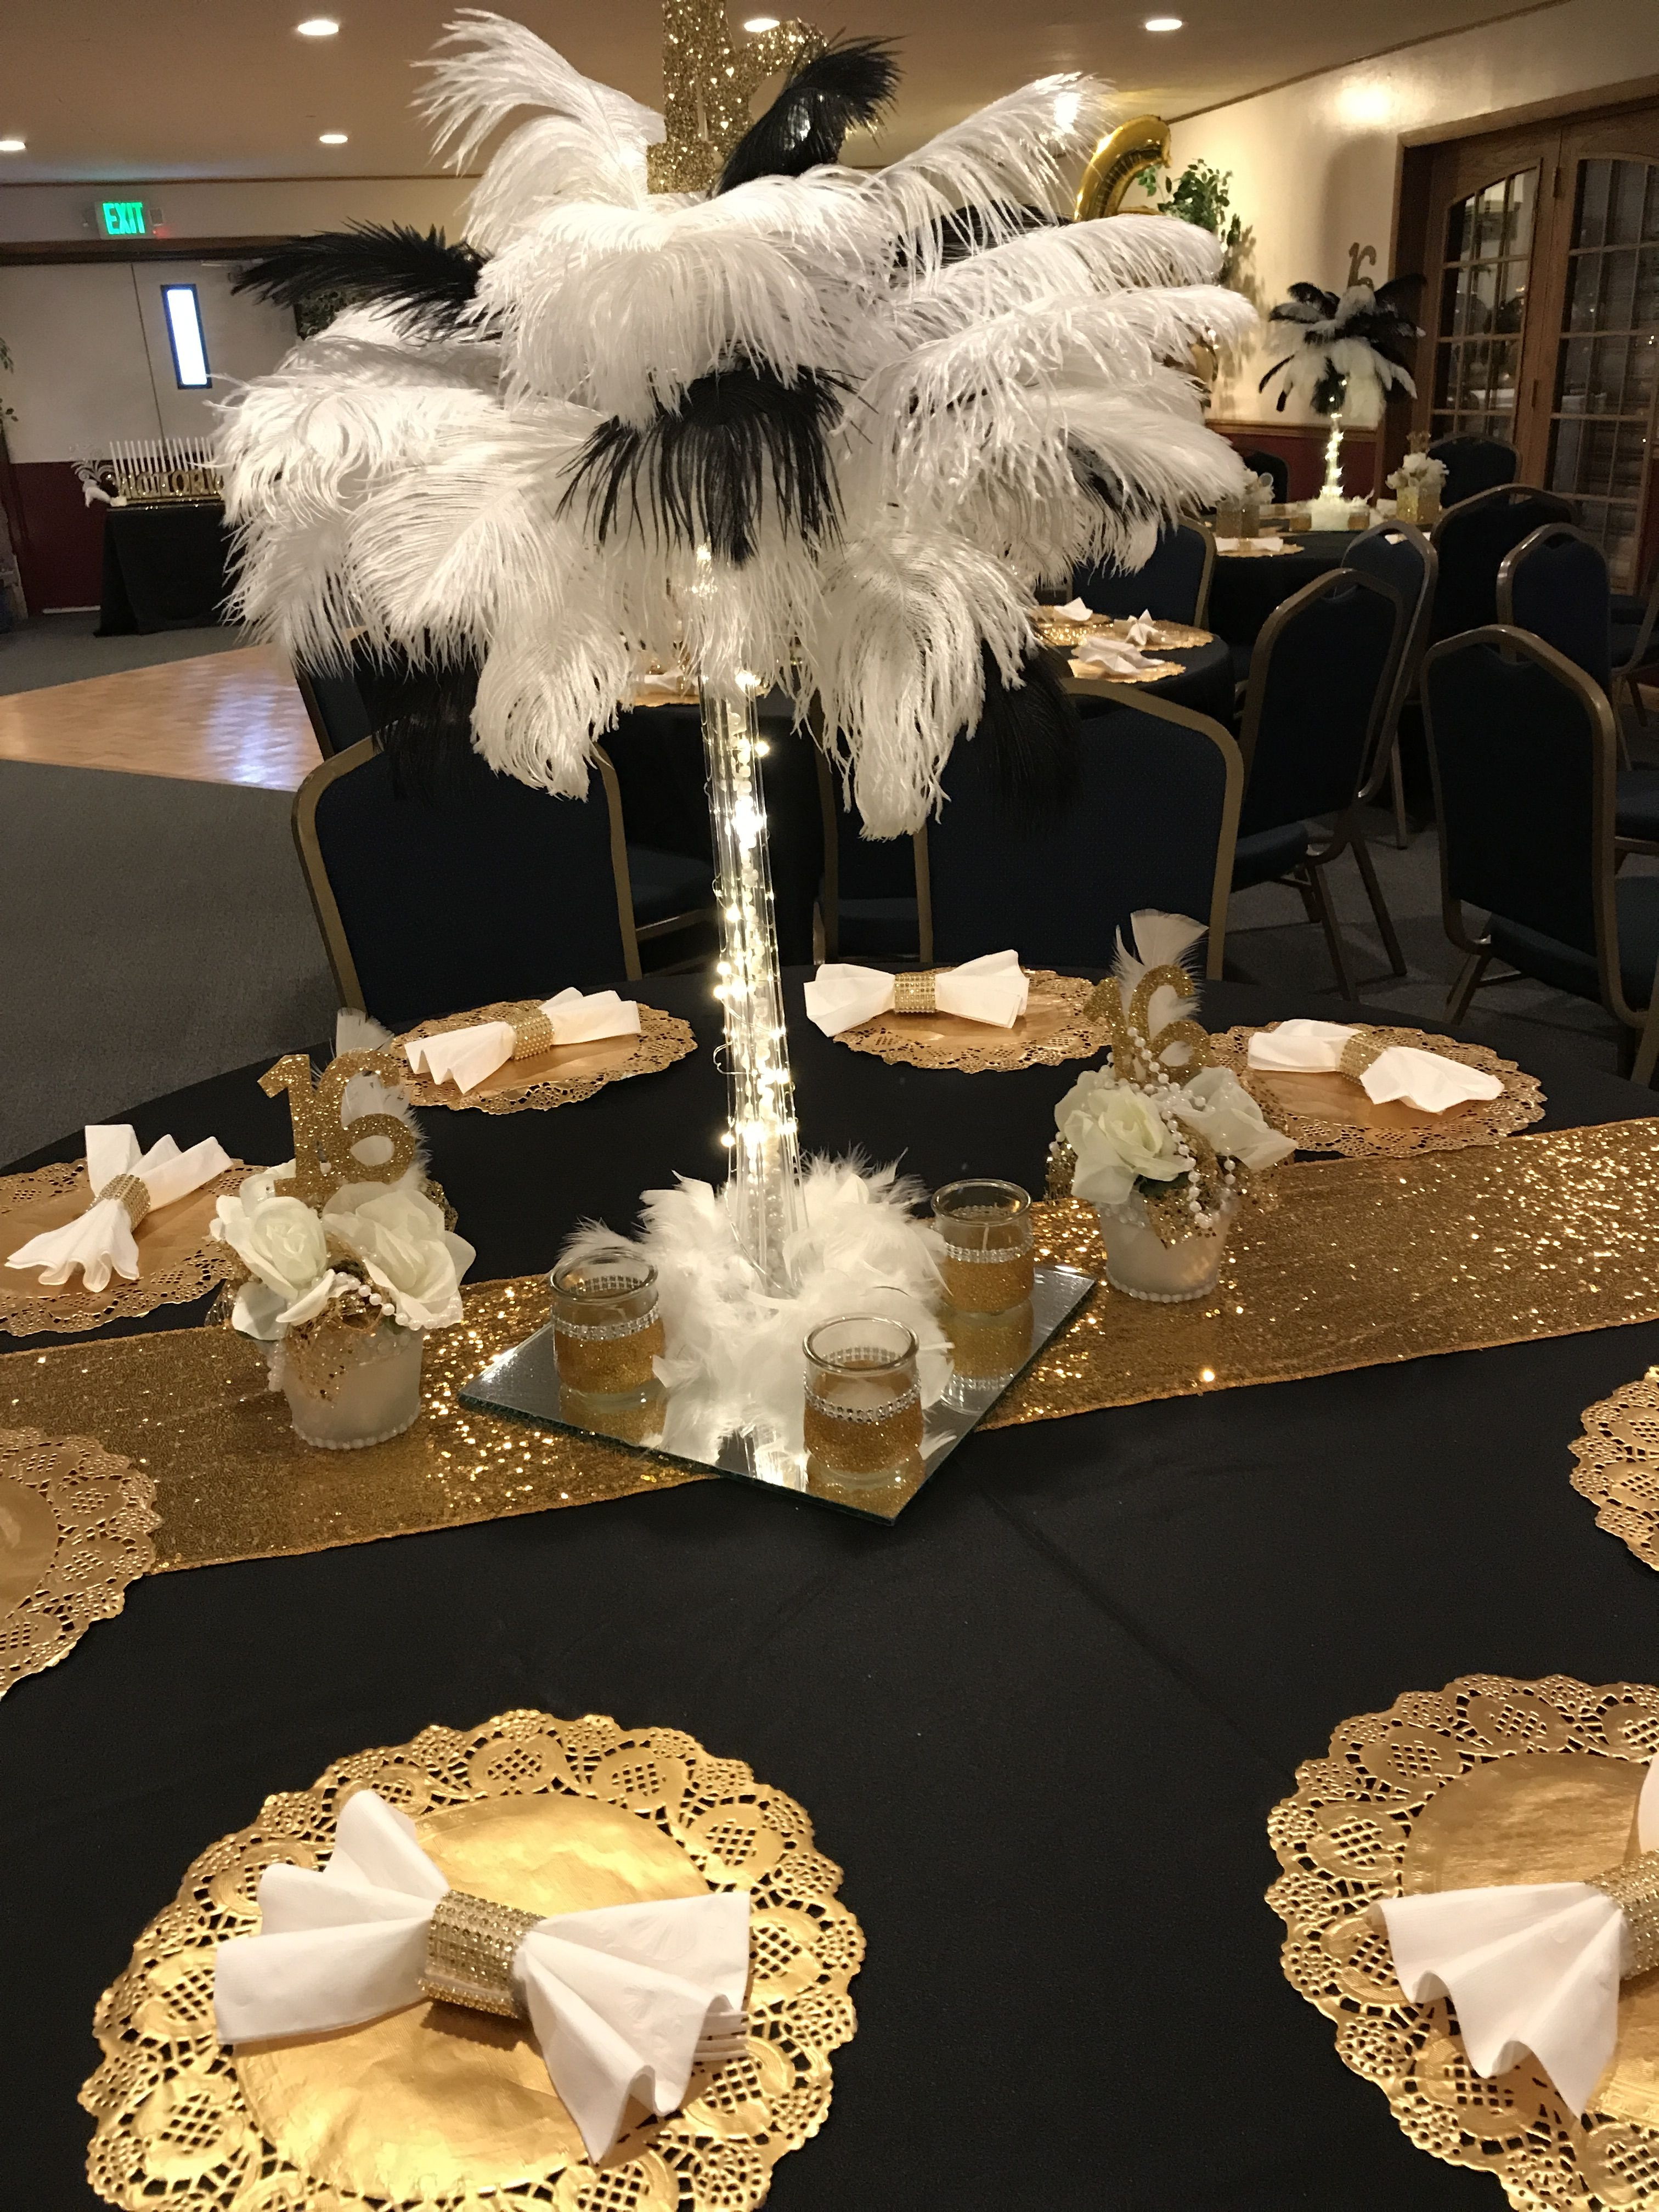 Great Gatsby Sweet 16 Birthday Party Decorations Black And Gold Ostrich Feathers Centerpieces Sweet 16 Centerpieces Sweet 16 Decorations Gatsby Sweet 16